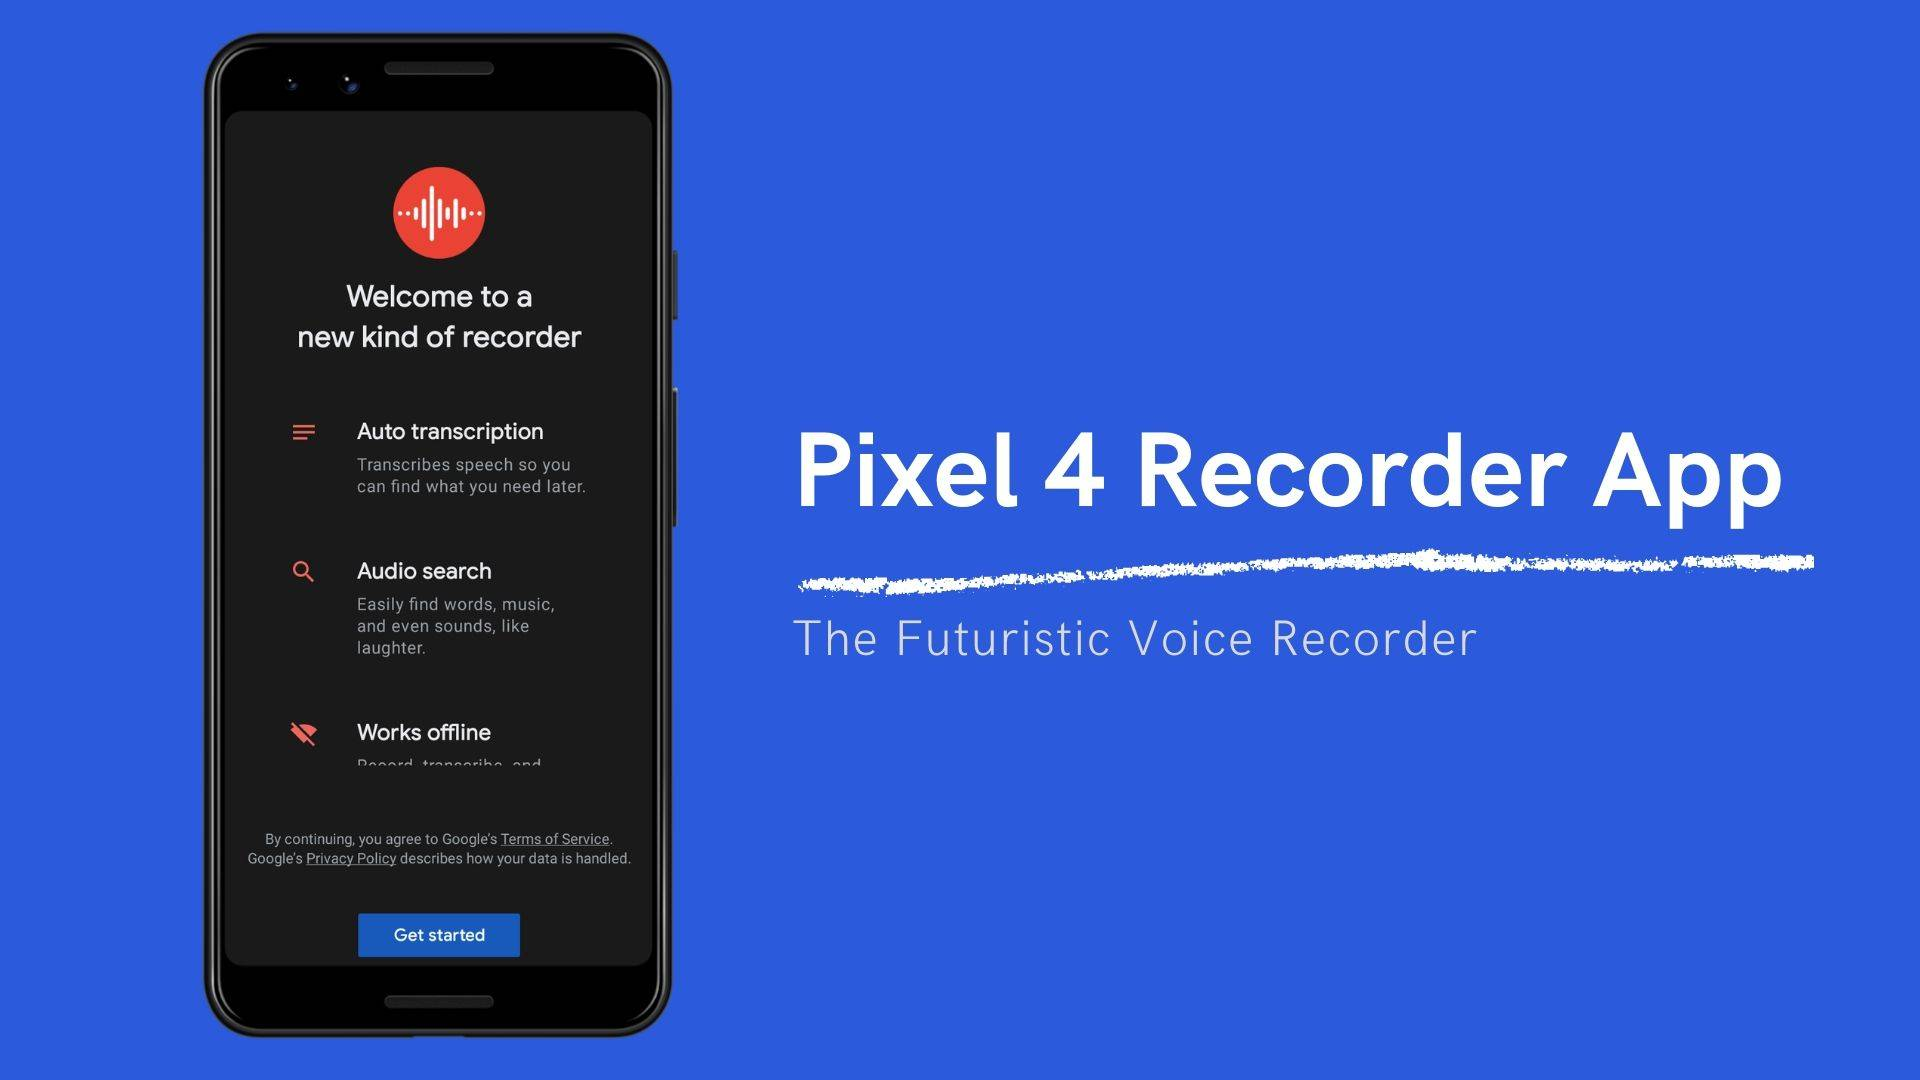 Pixel 4 Recorder App Transcribes Voice into text in Real-Time – Get on Any Android Phone